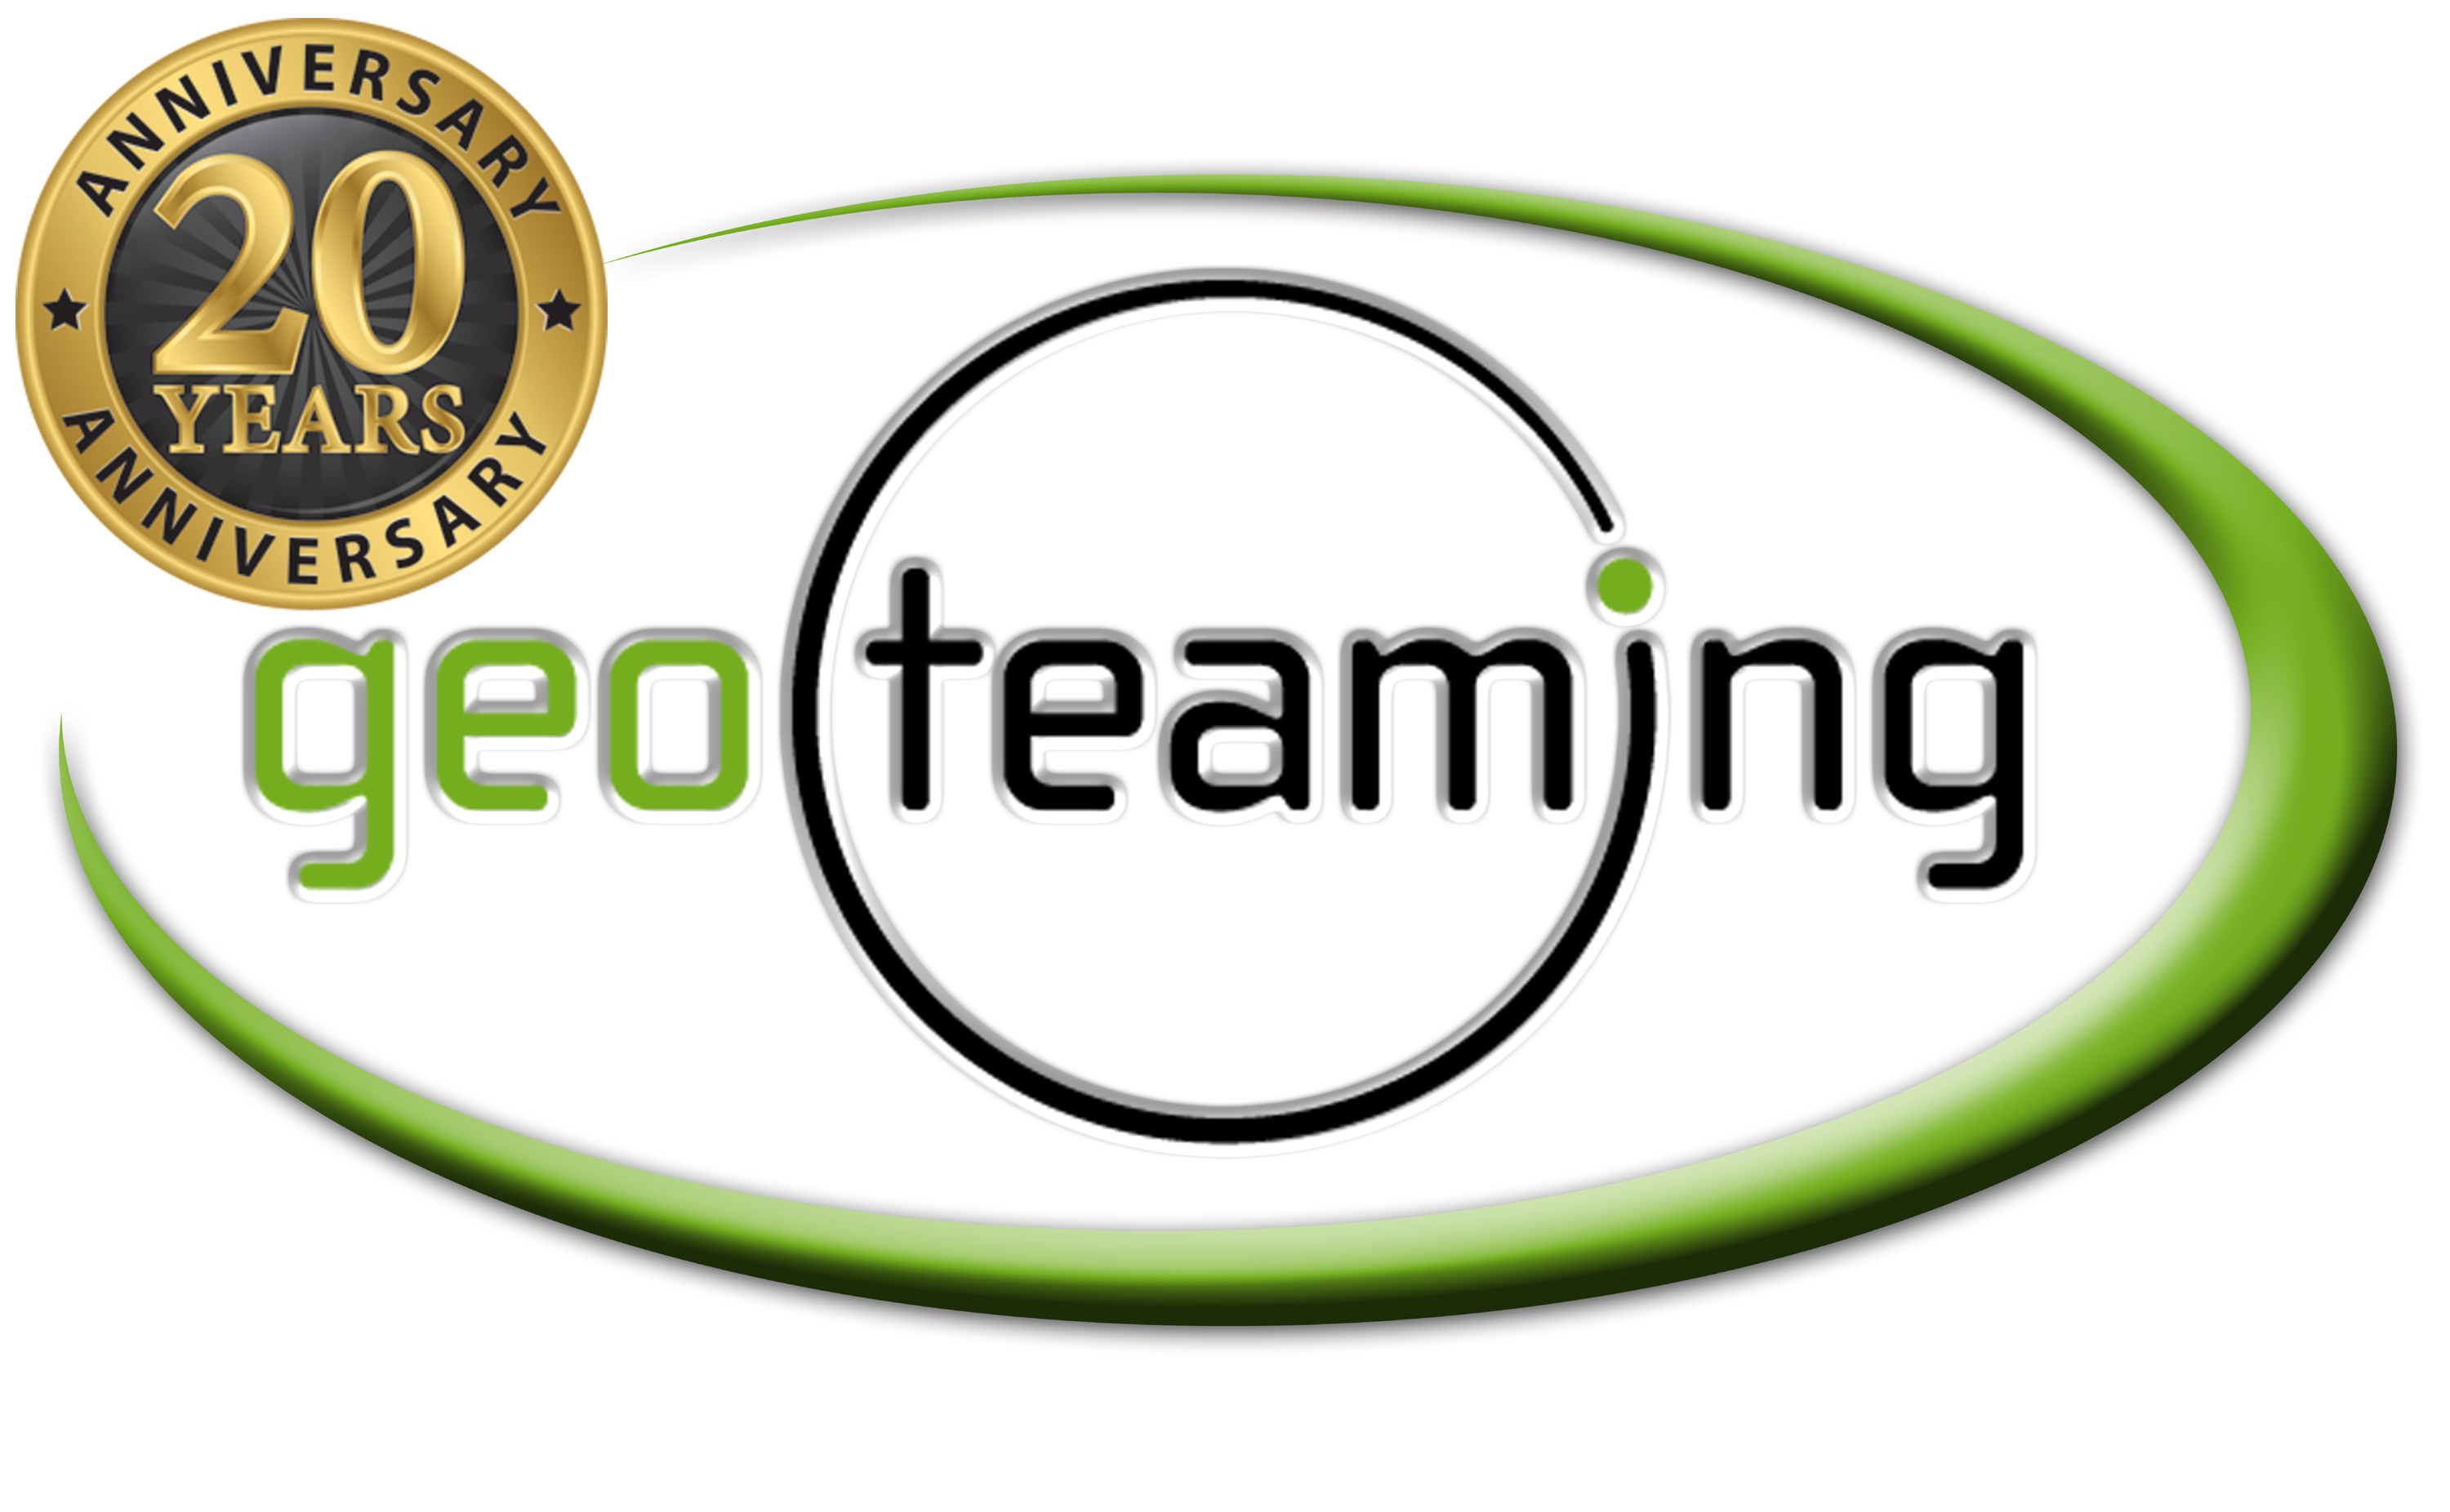 170122 20th Anniversary Geoteaming Logo